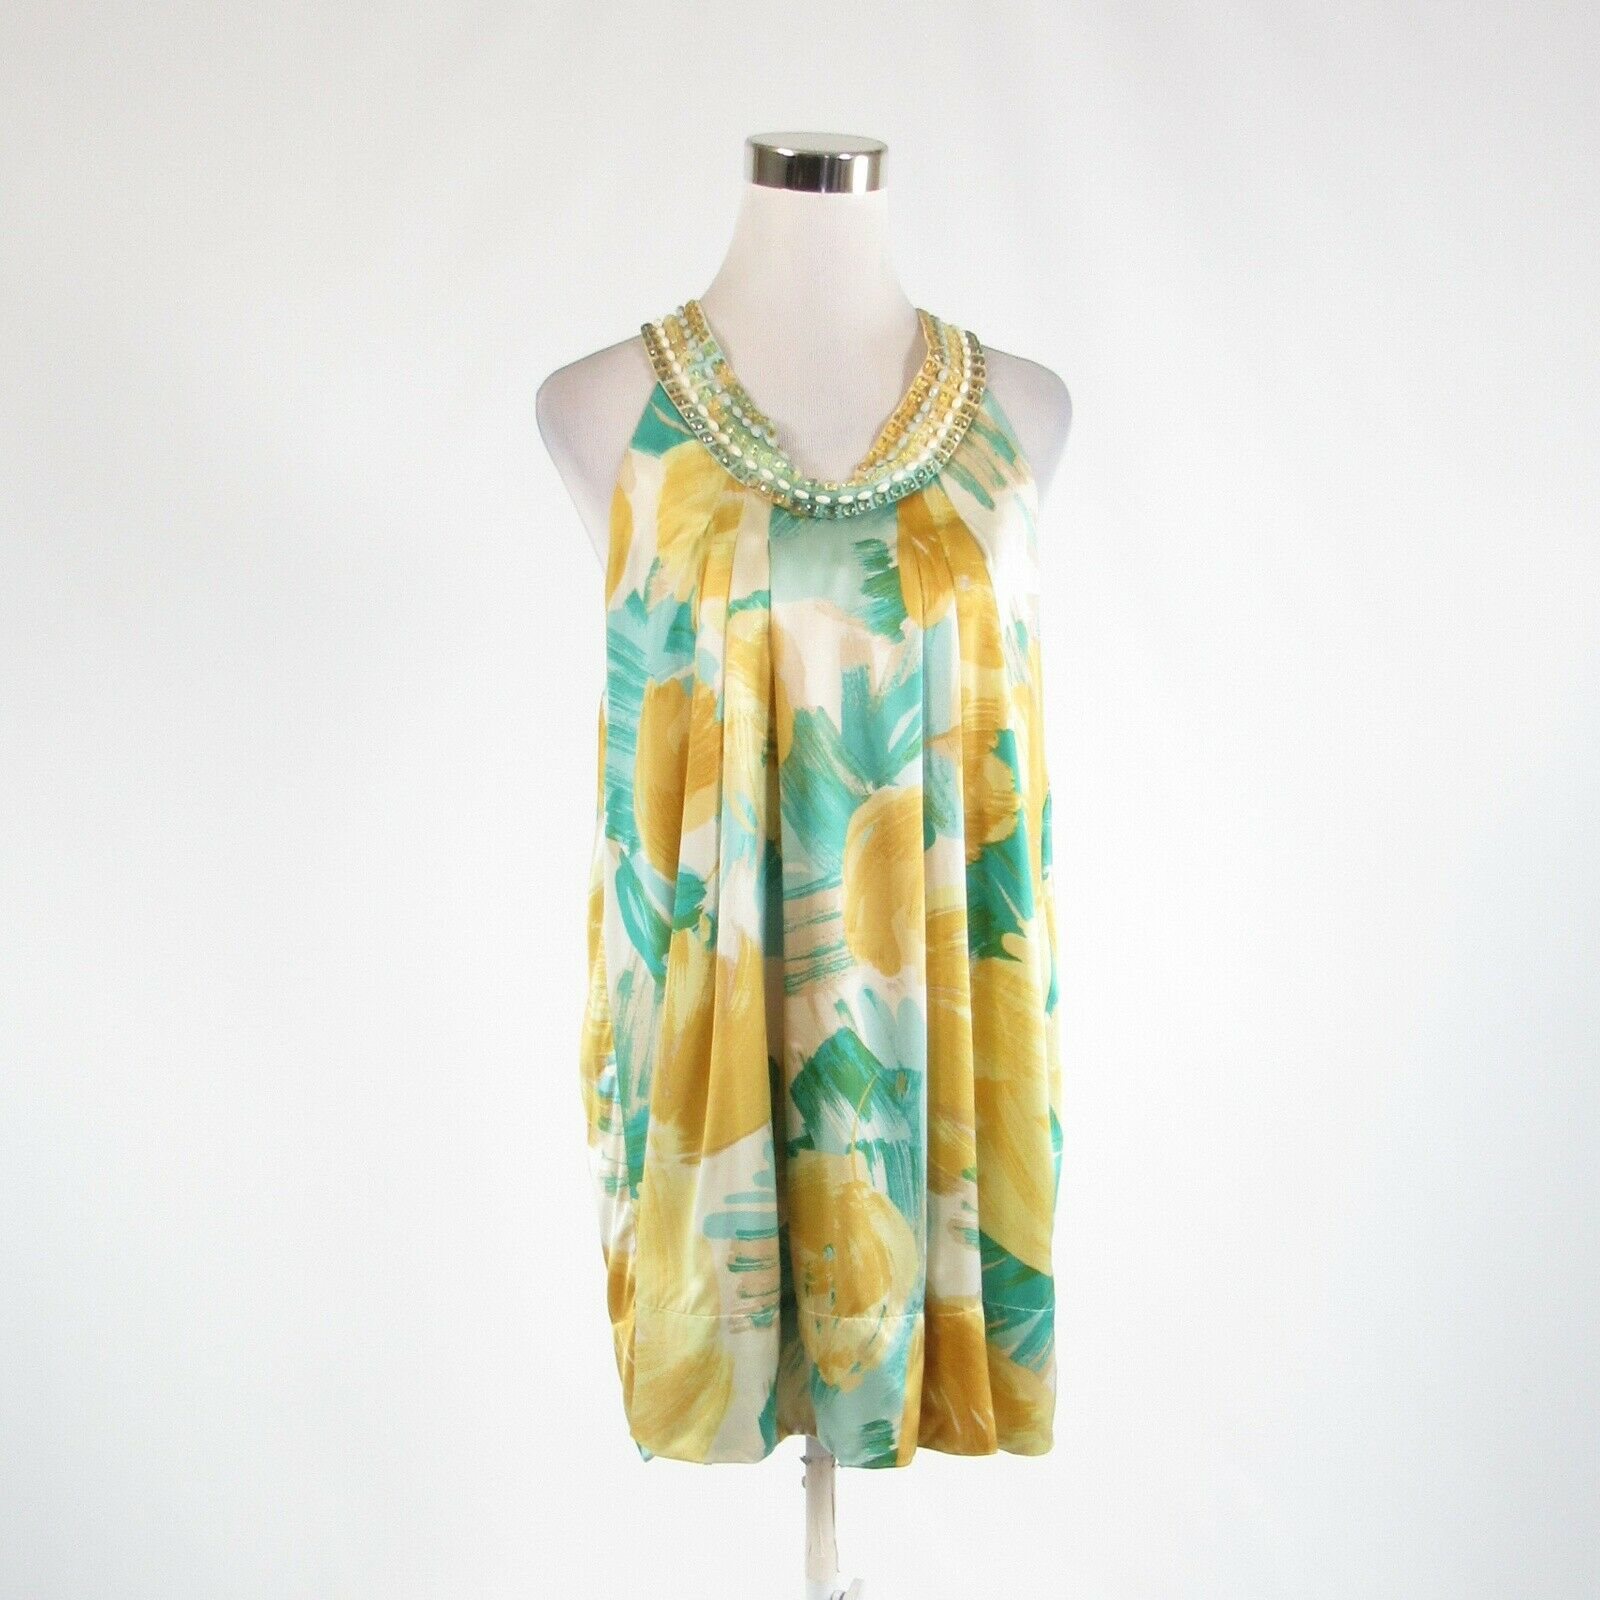 Mustard yellow green abstract satin BCBG MAX AZRIA shift dress XS NWOT-Newish